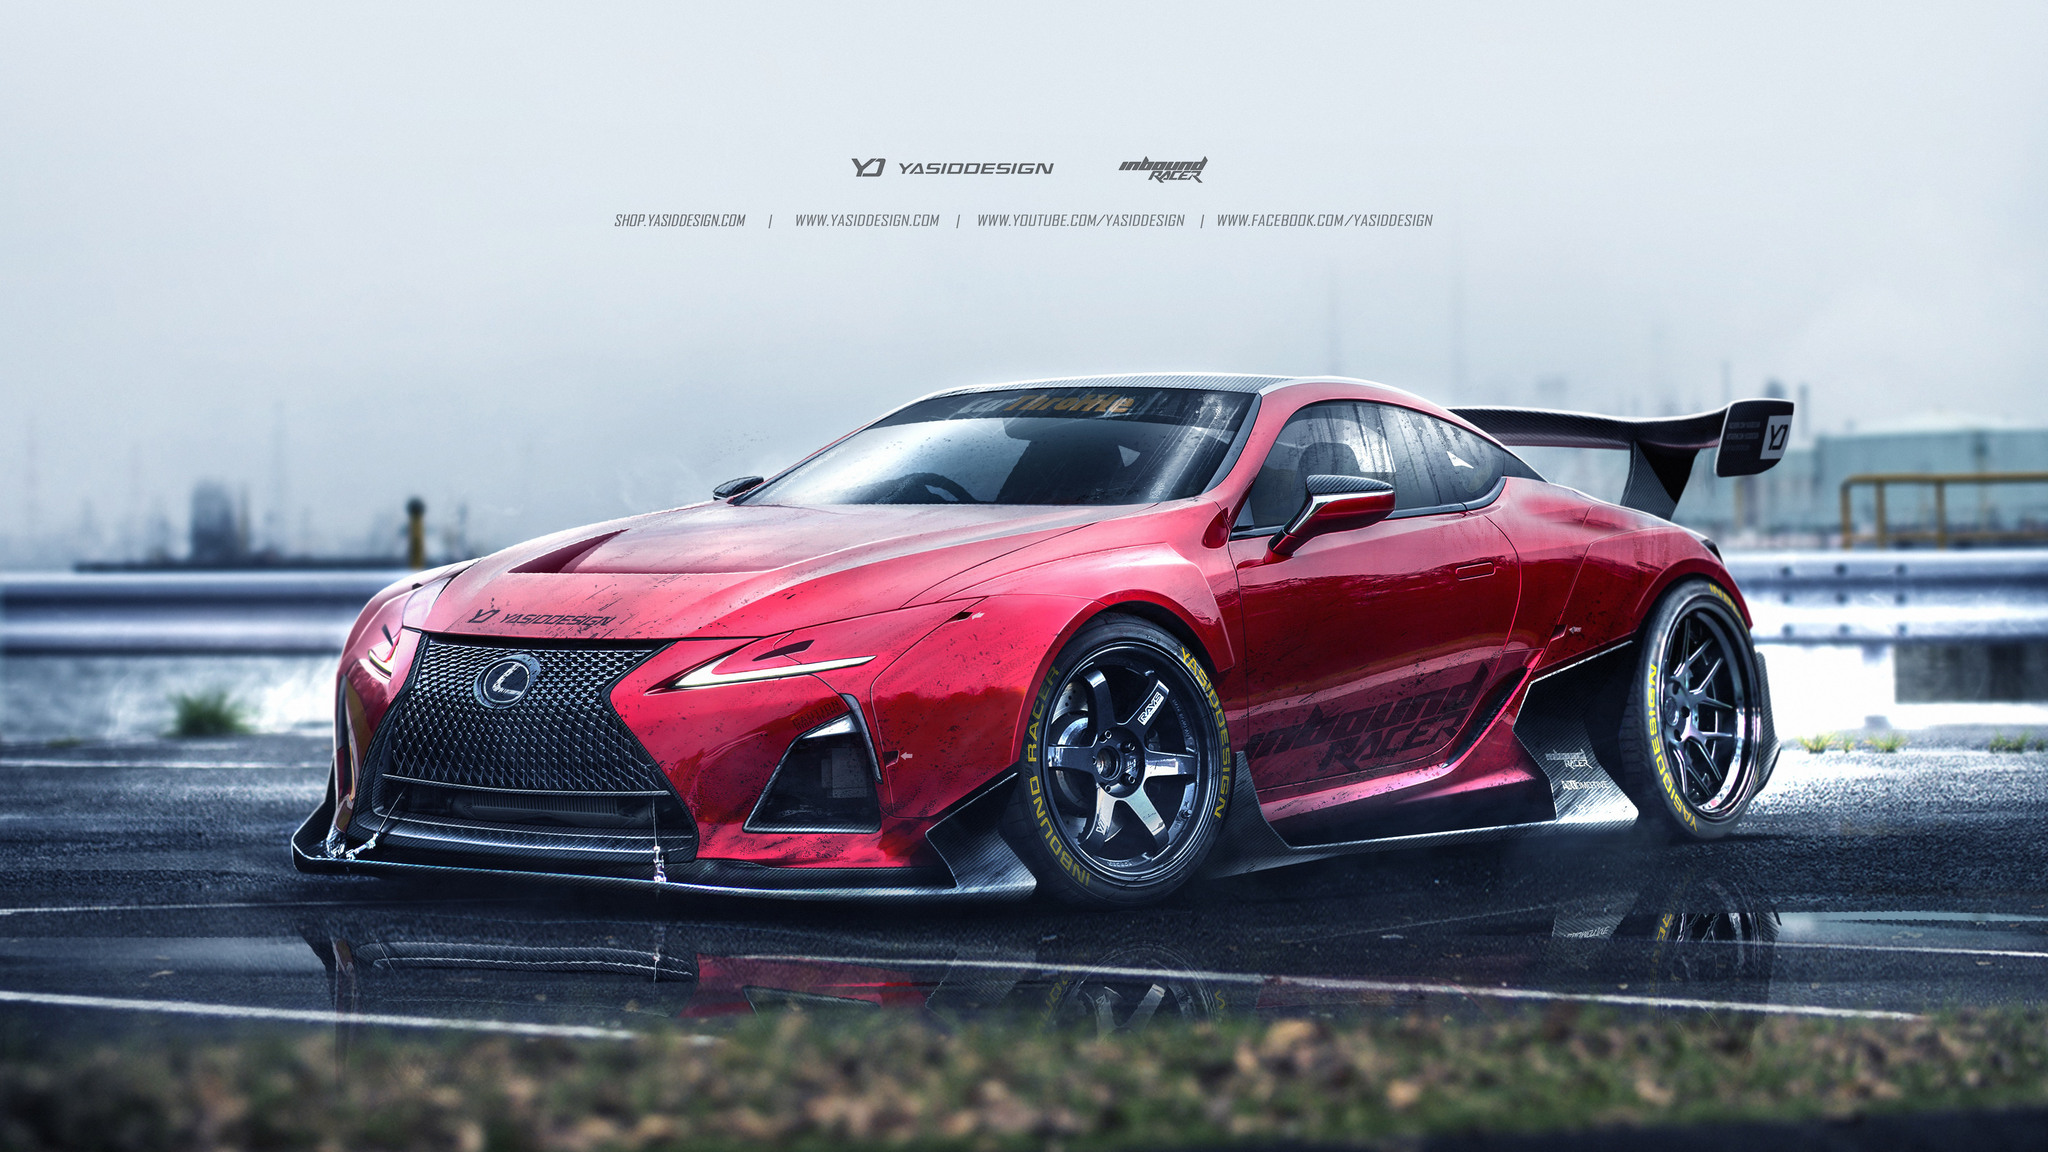 lexus-lc500-fan-design-4k.jpg